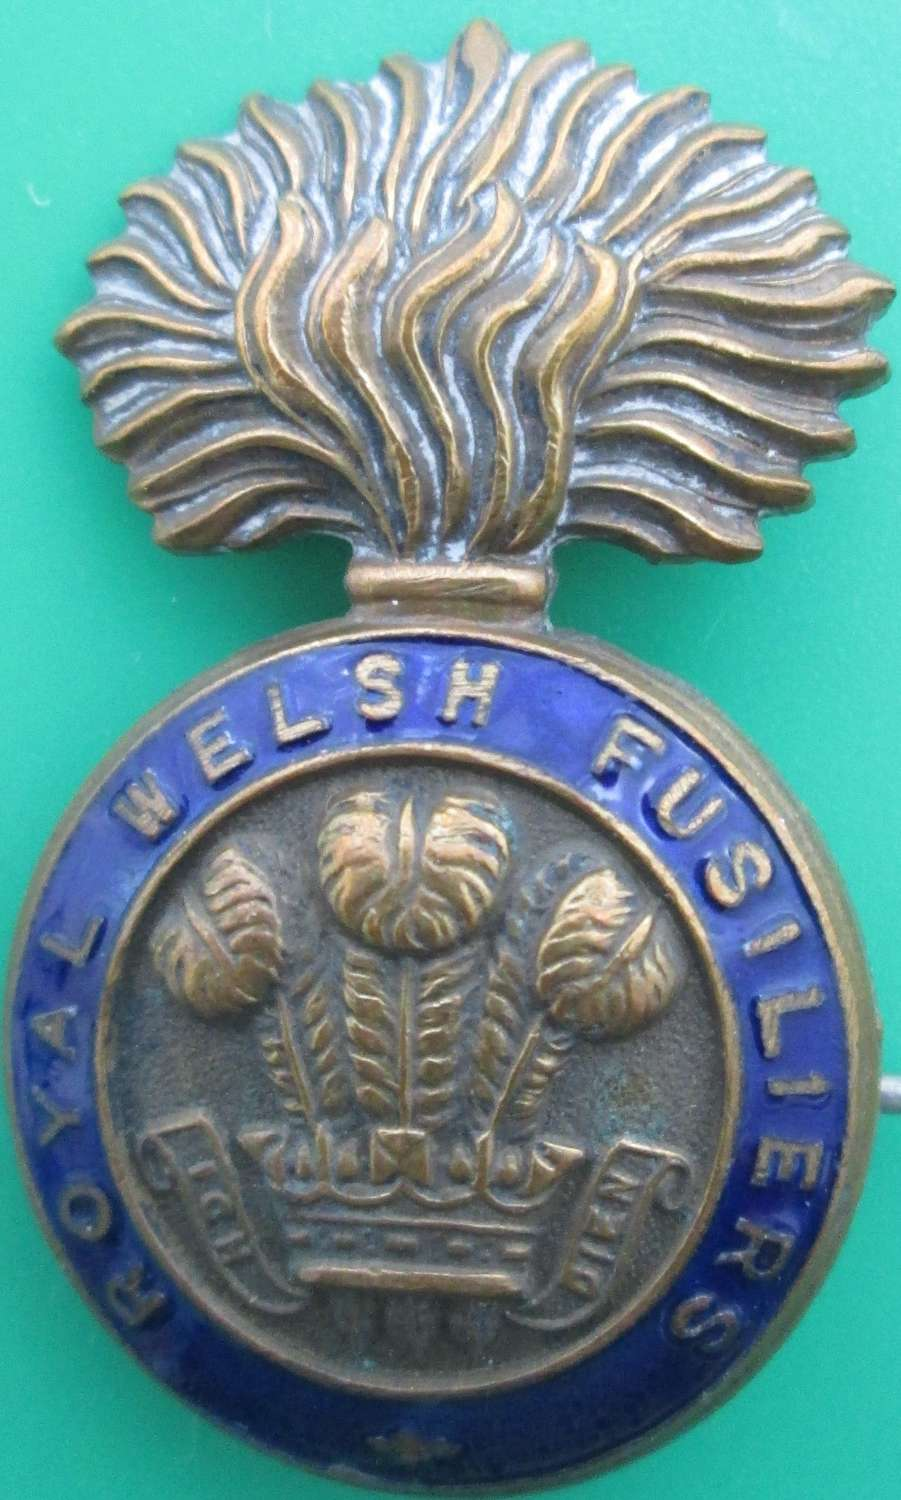 A ROYAL WELSH FUSILIERS PIN BROOCH